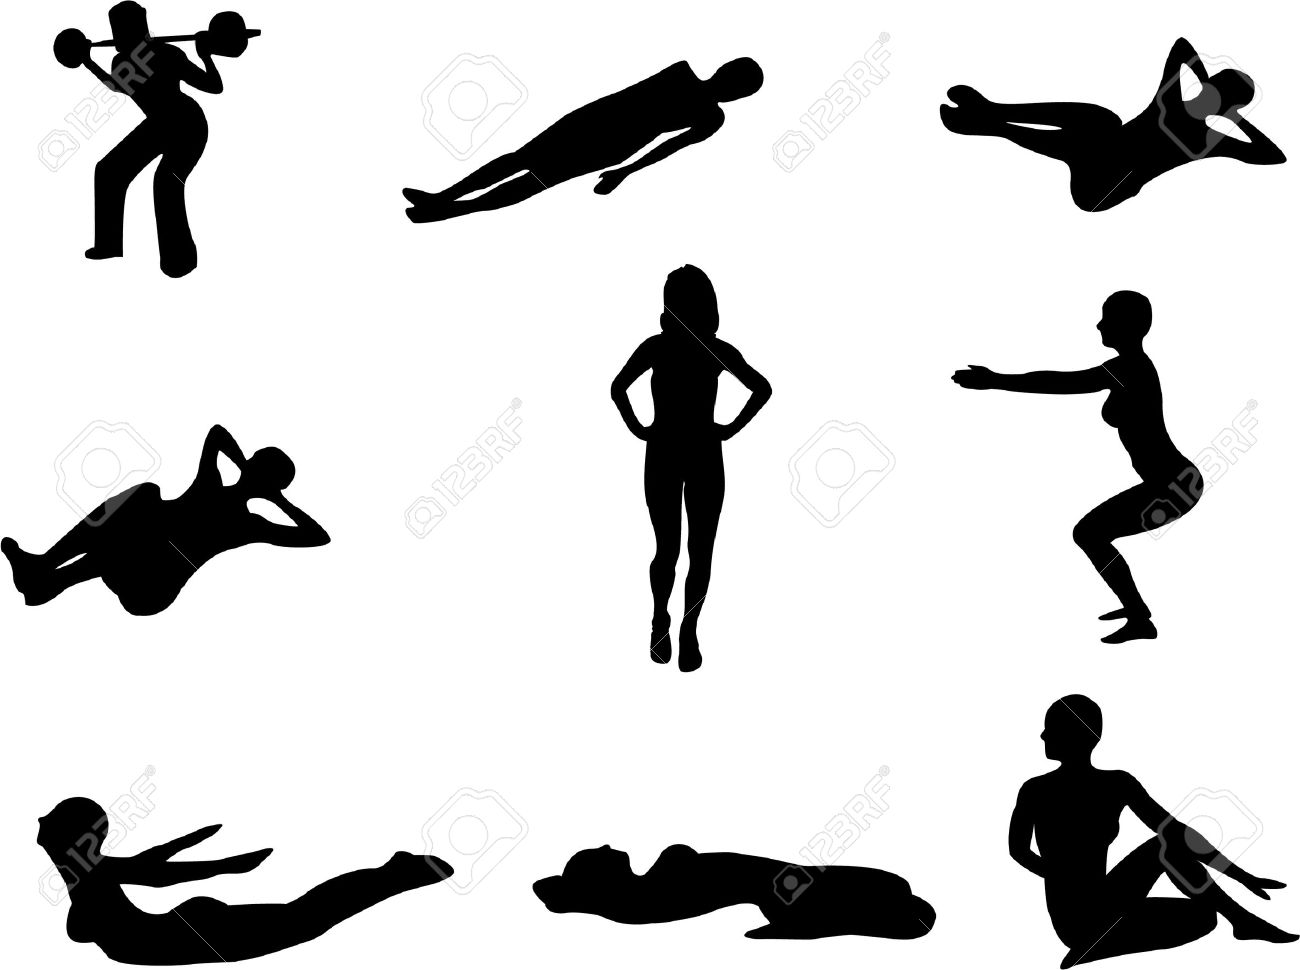 Set of 9 silhouettes of people doing gym exercises, stretching etc. Stock Vector - 5230977